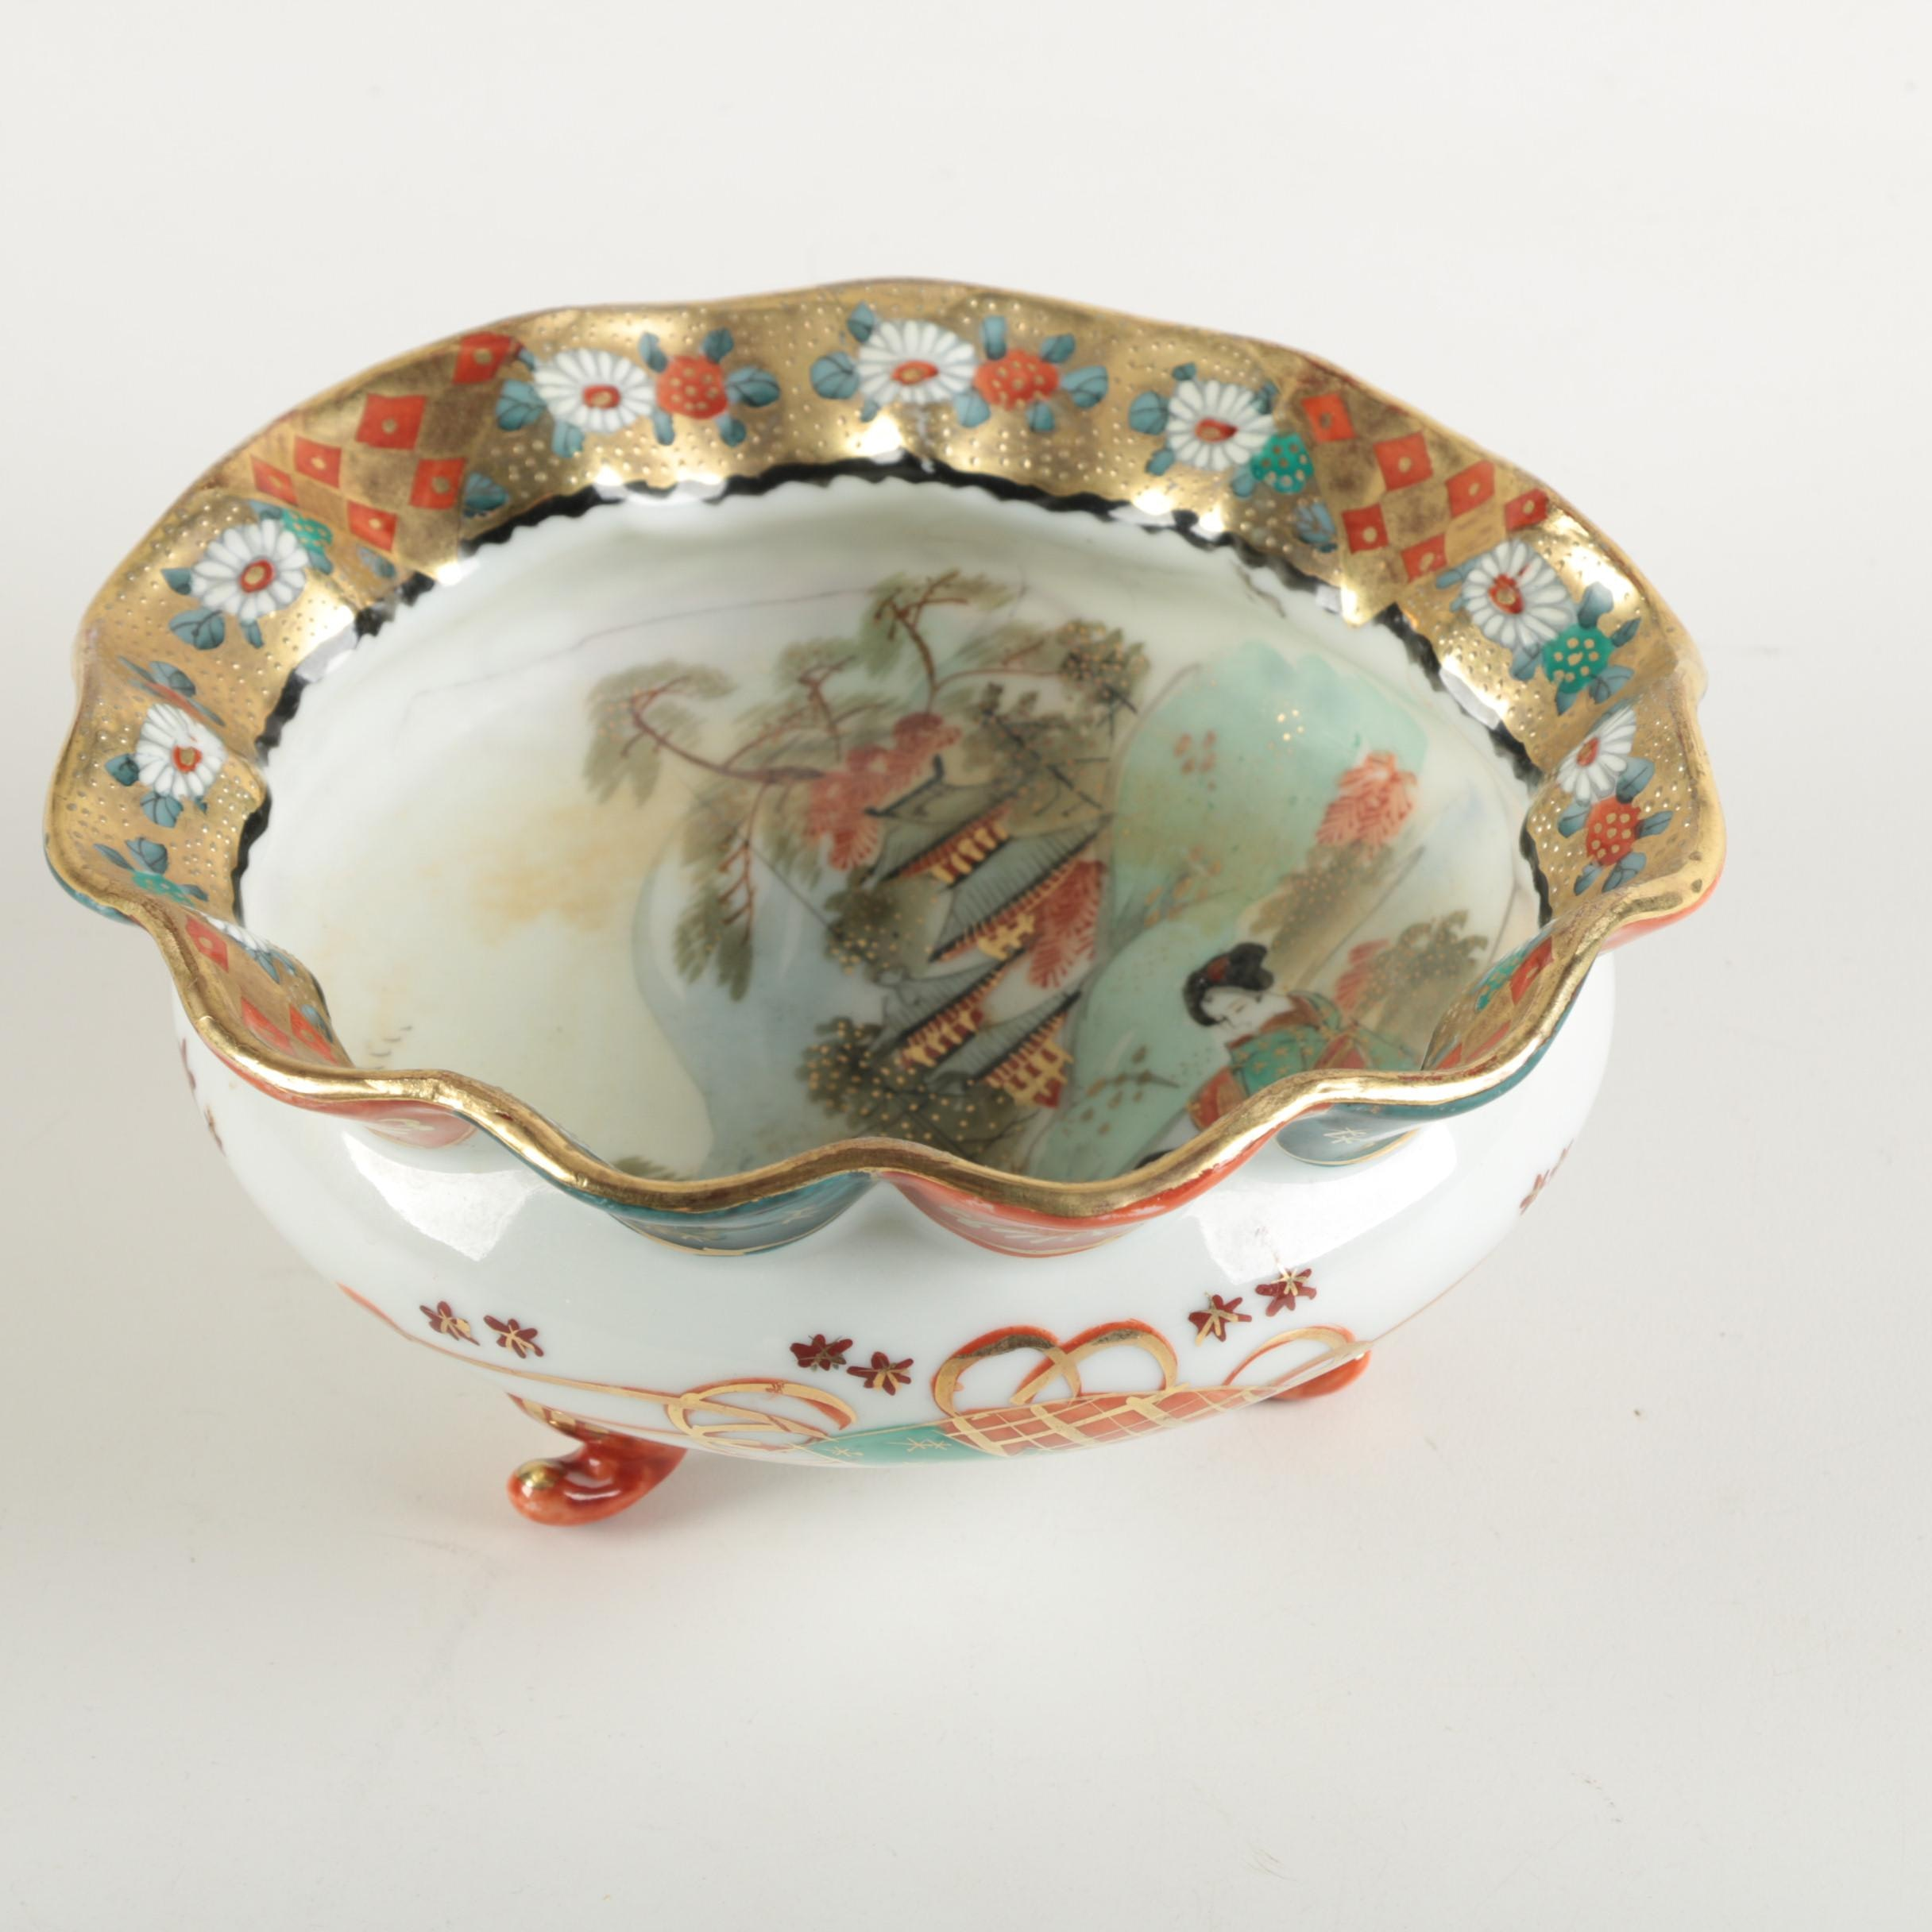 Asian-Inspired Porcelain Bowl with a Ruffled Rim